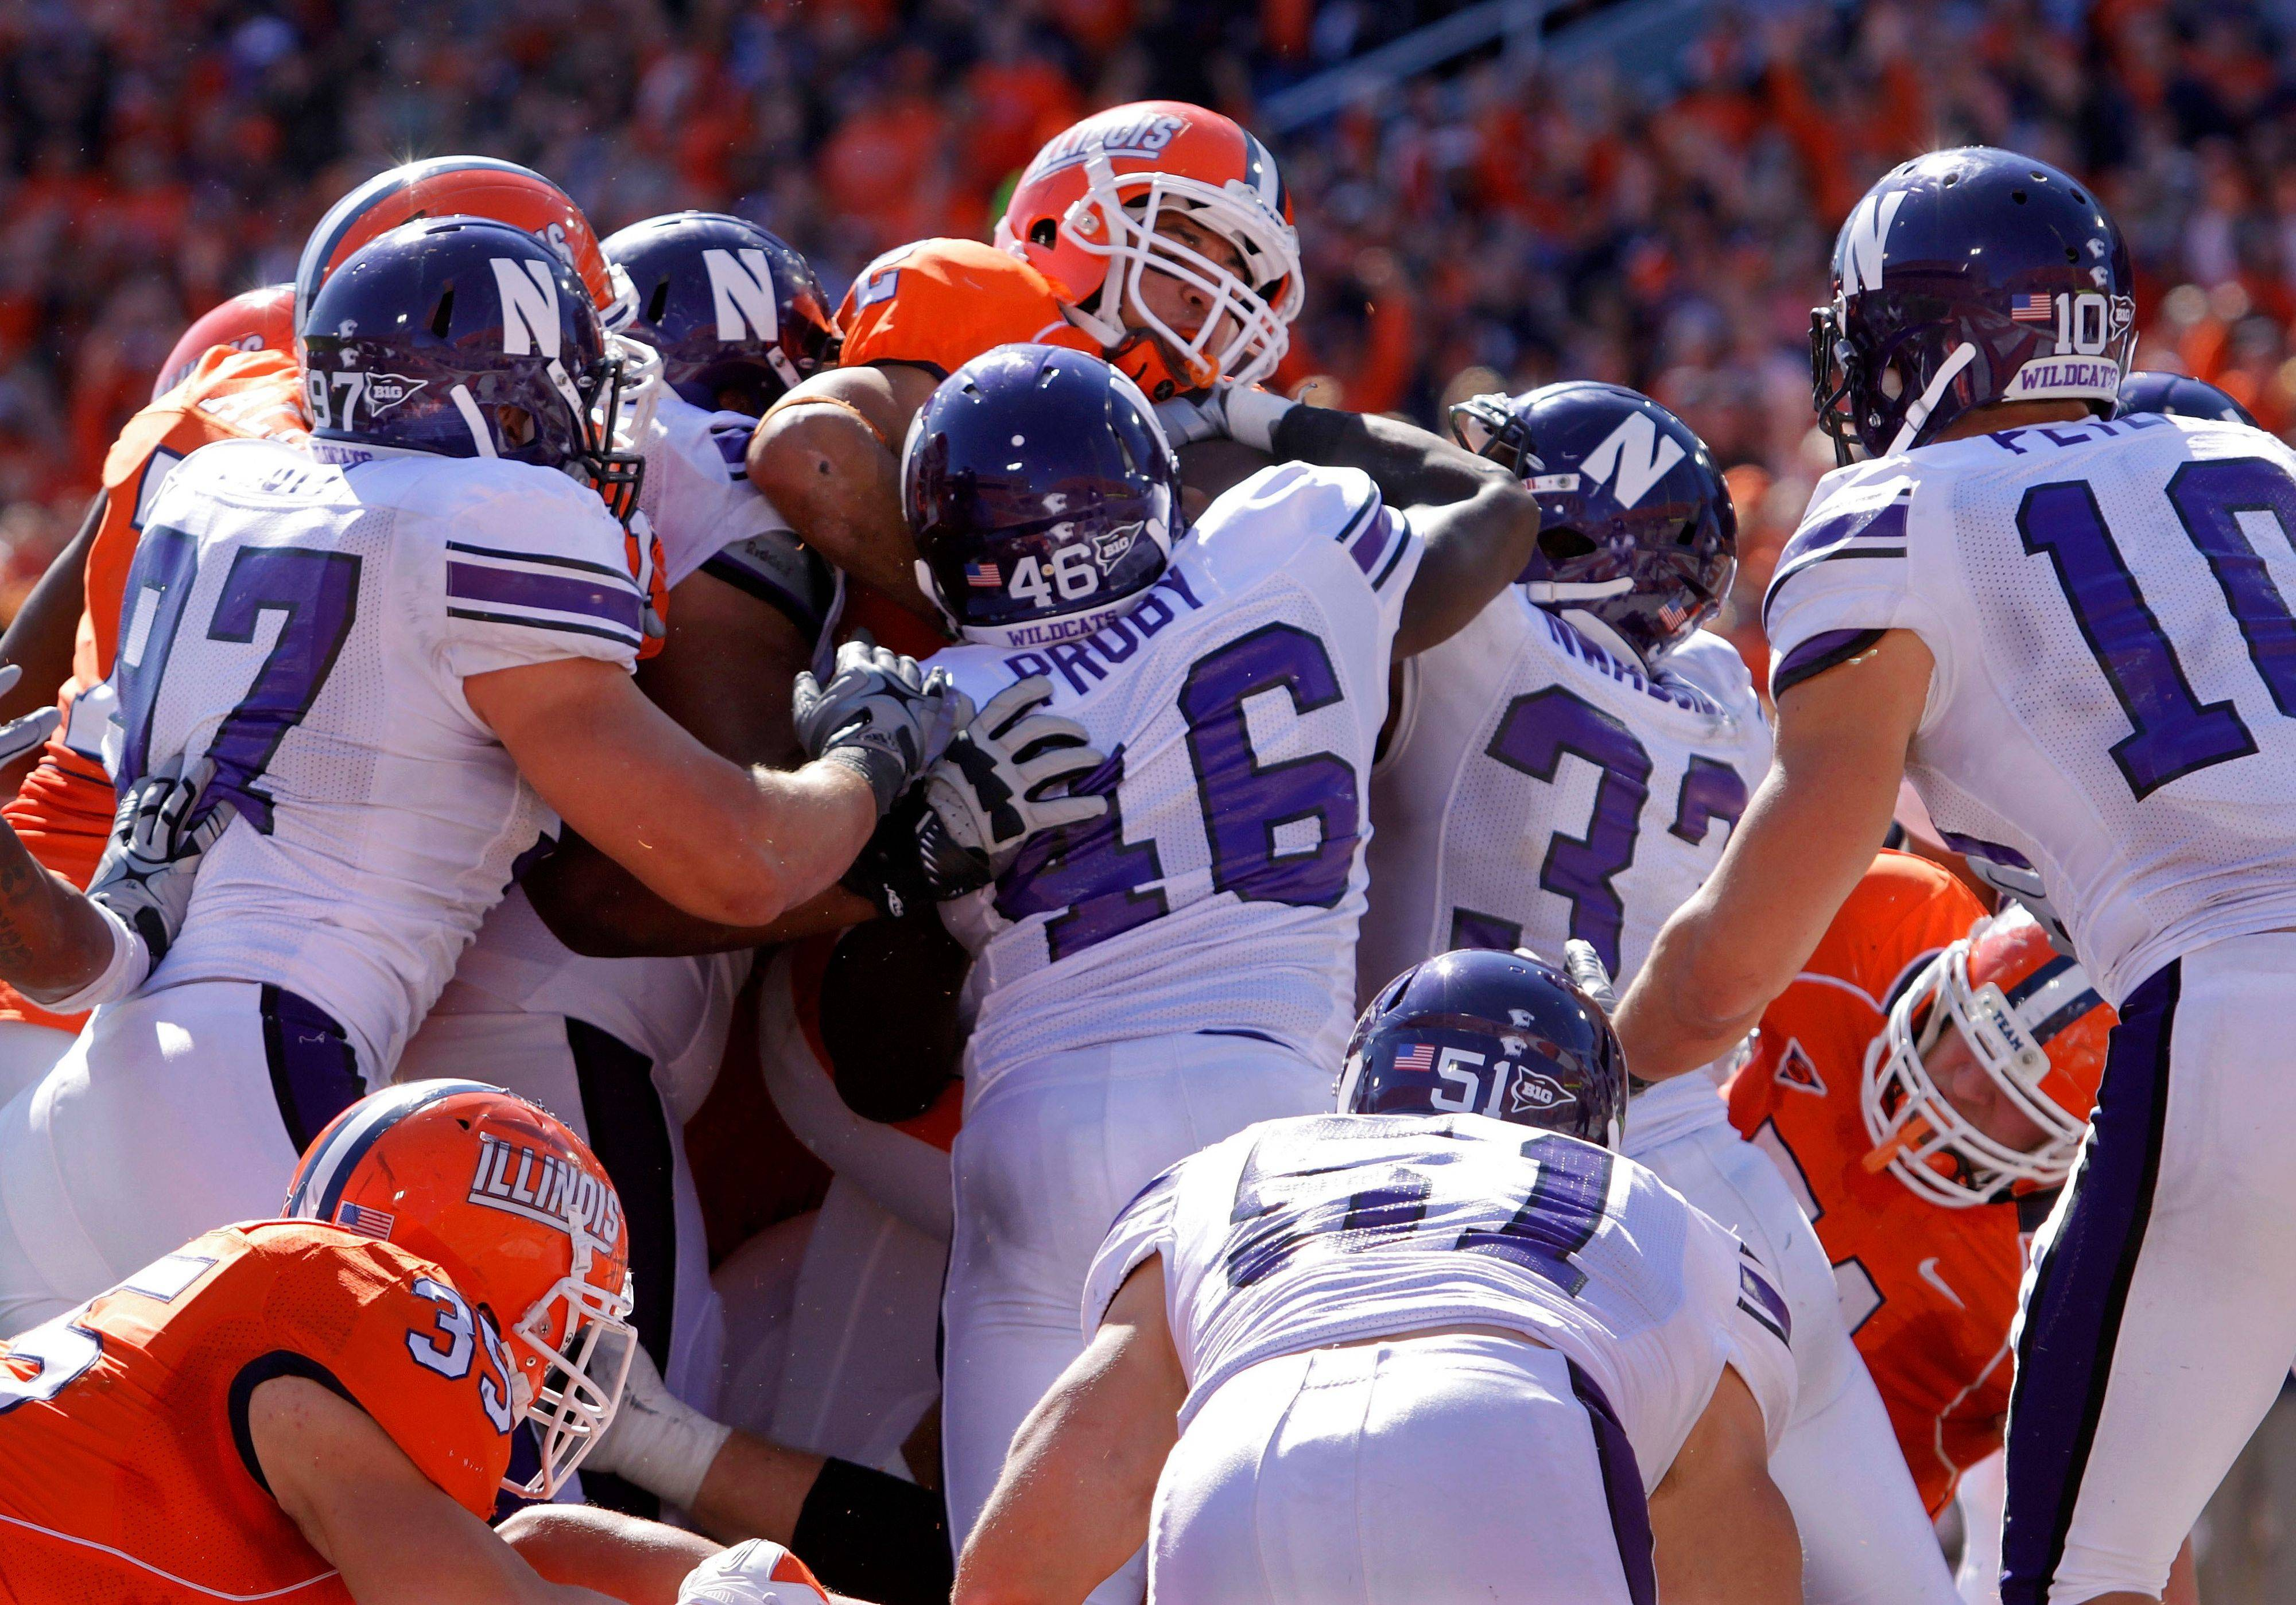 Illinois quarterback Nathan Scheelhaase, top, pushes through the Northwestern defense to score the game-winning touchdown in the closing seconds Saturday.